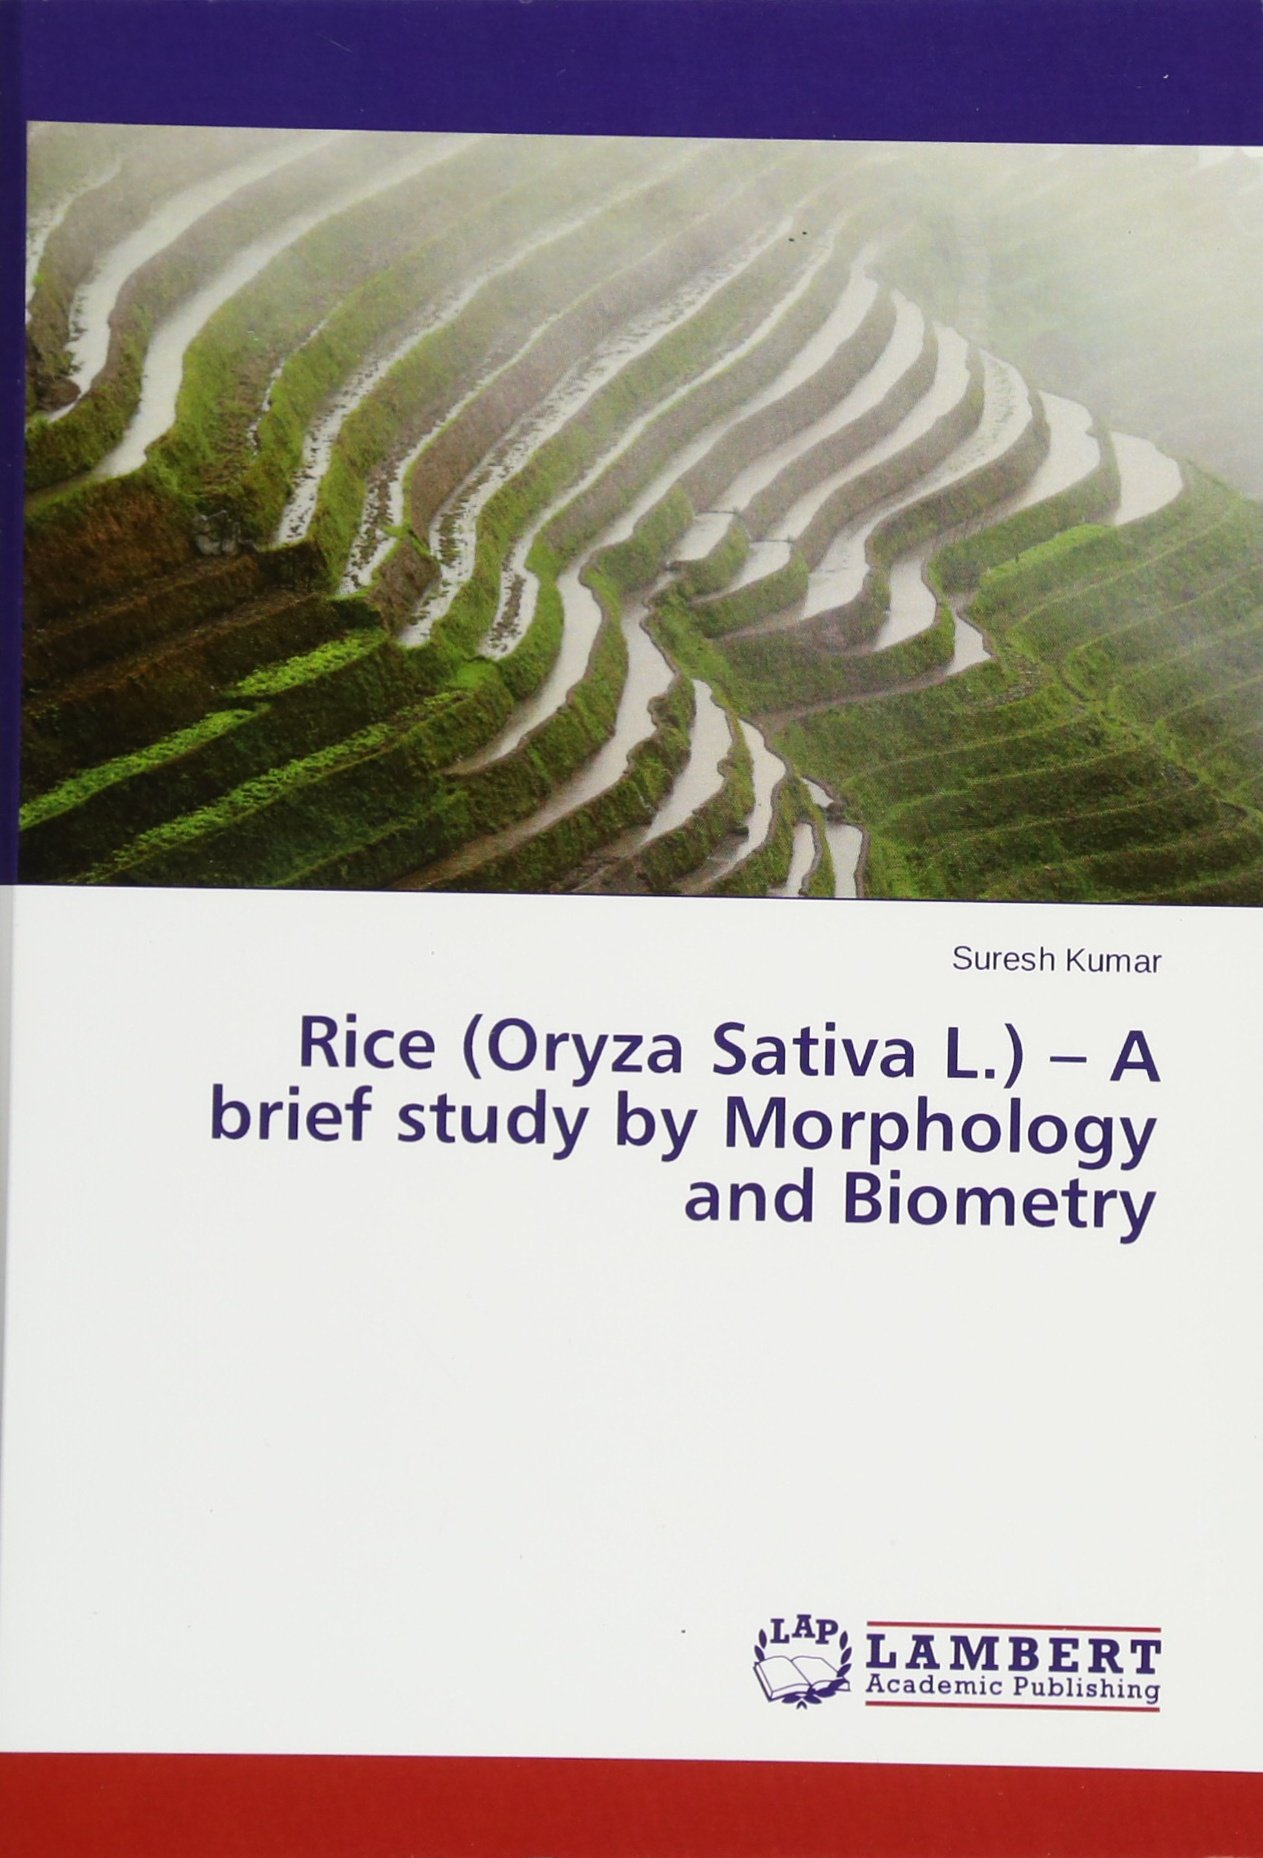 Rice (Oryza Sativa L ) - A brief study by Morphology and Biometry